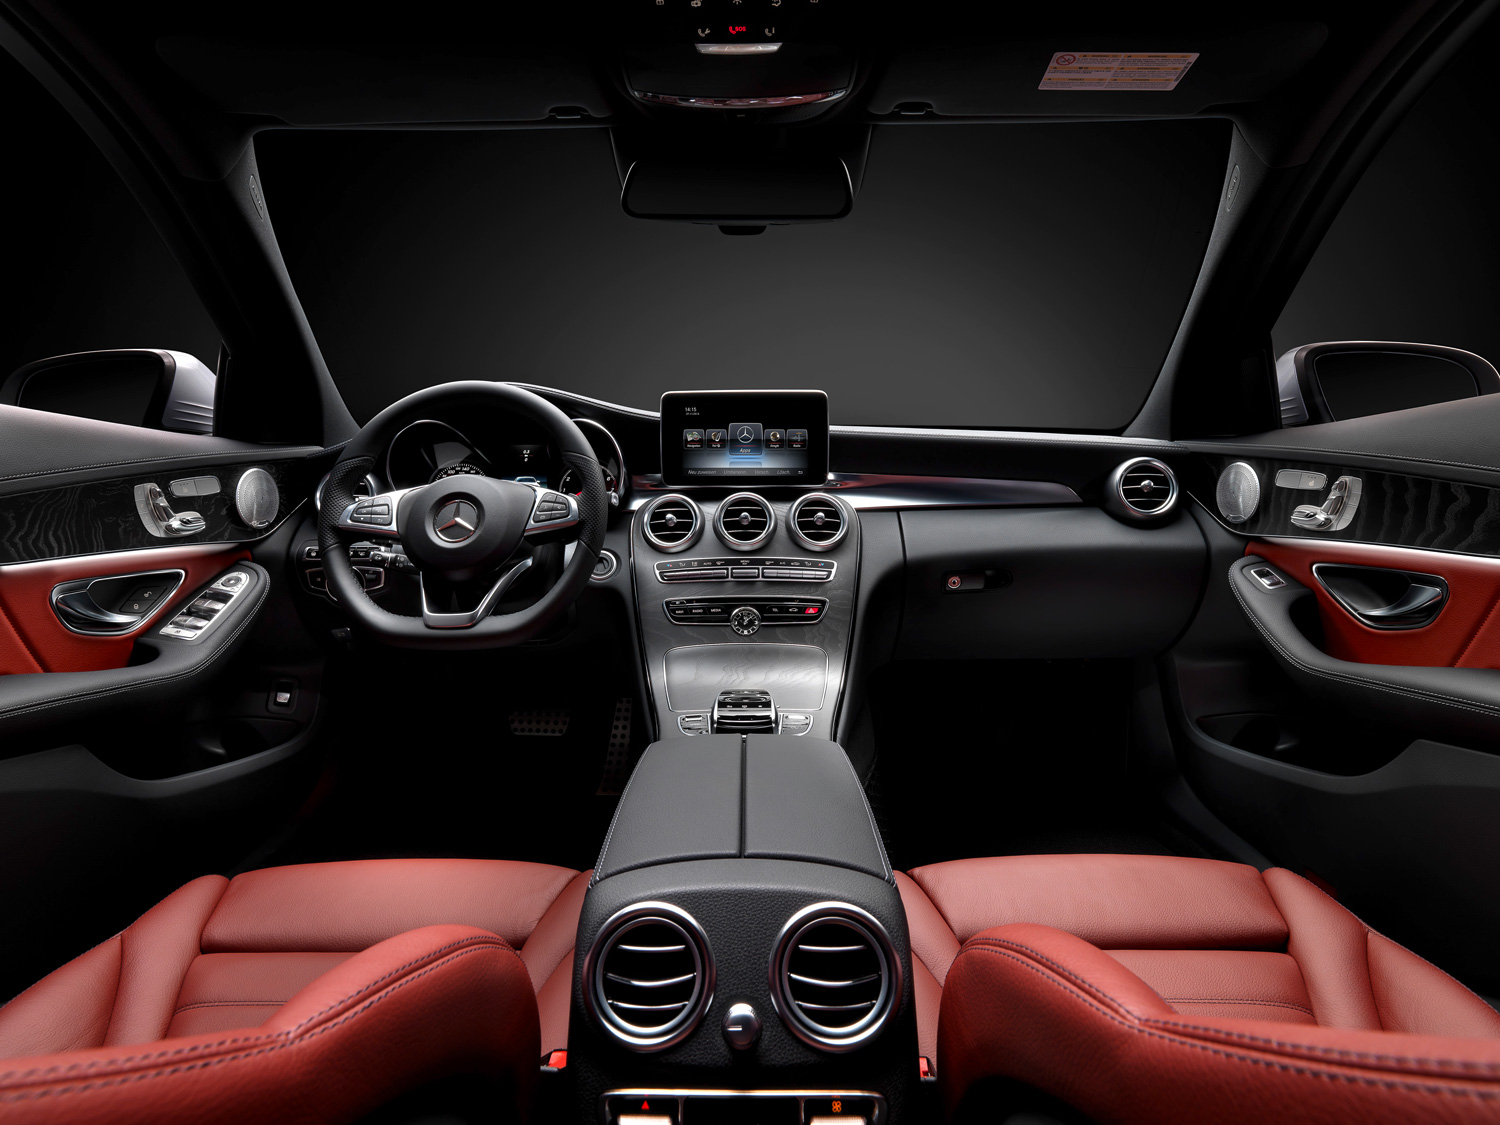 2015 Mercedes-Benz C-Class Front Interior Seats and Dashboard